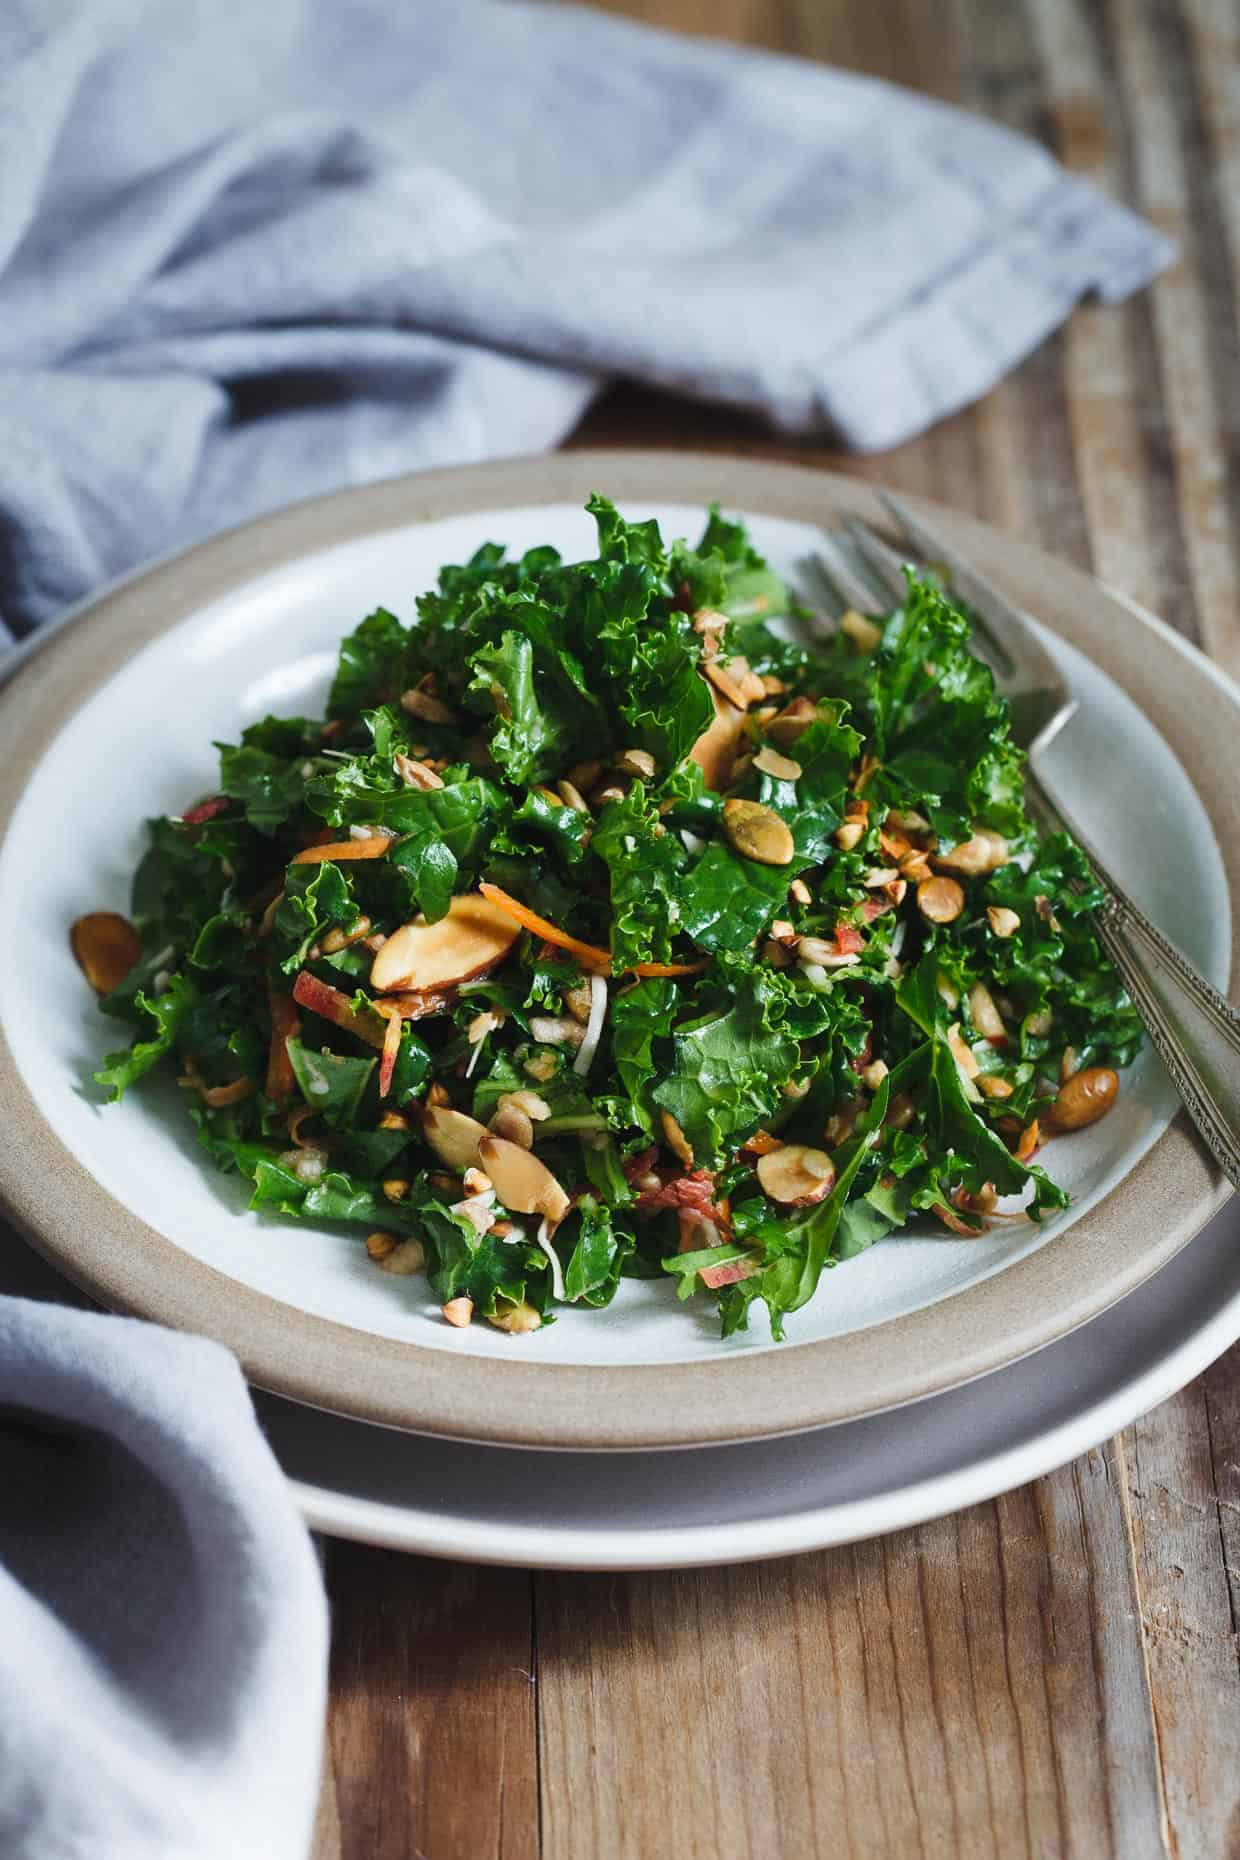 Kale Salad with Toasted Nuts, Seeds, & Buckwheat